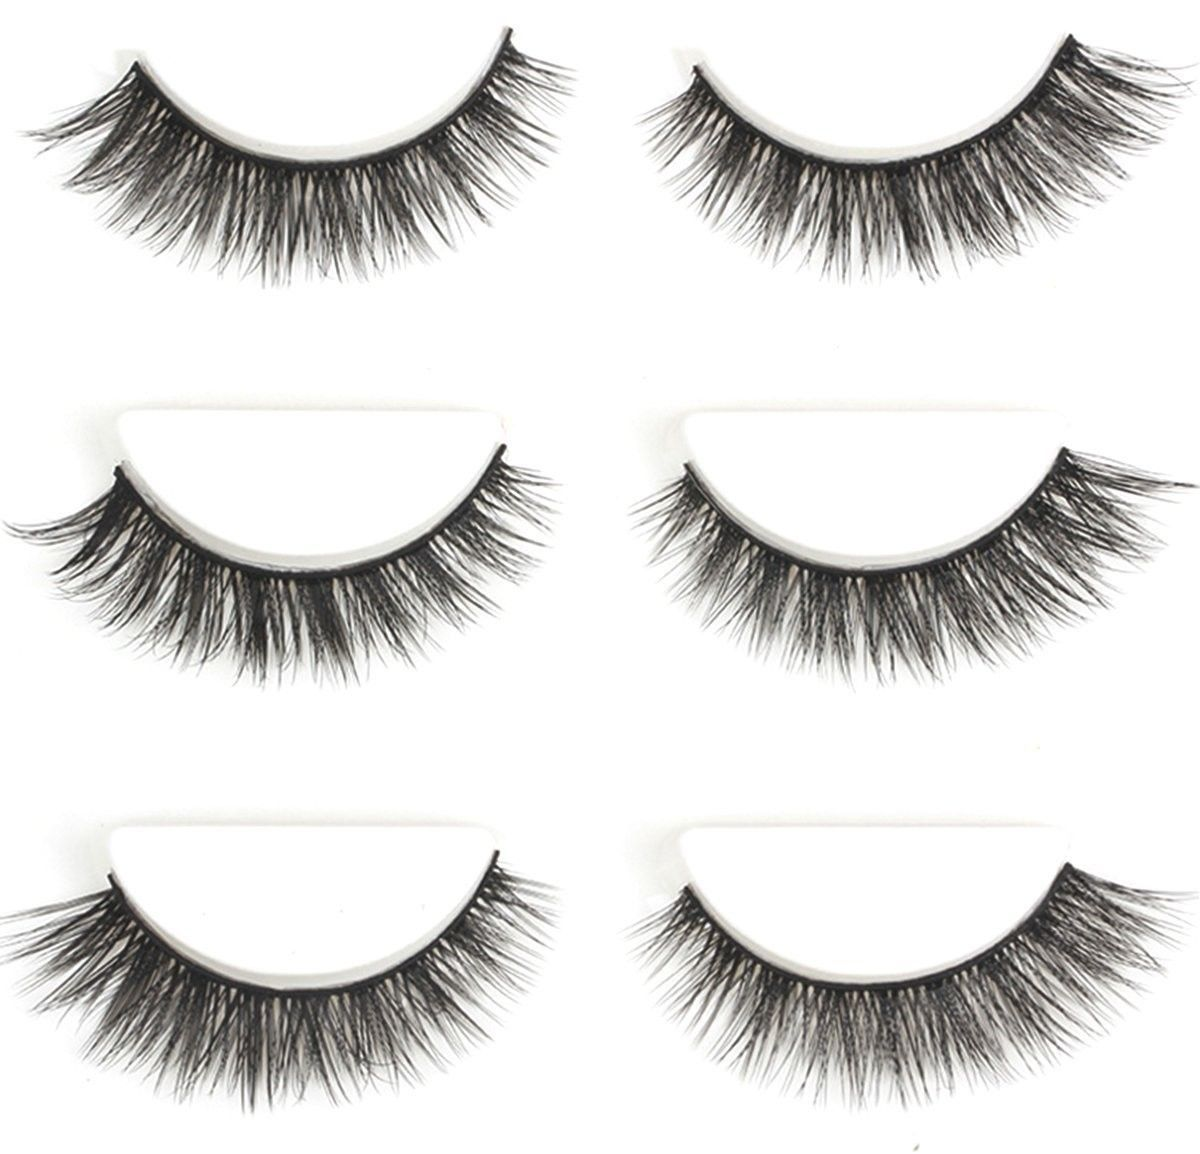 Primary image for Urbun 3 Pairs Luxurious Real Mink 3D Eyelashes Natural Volume Cross Thick False